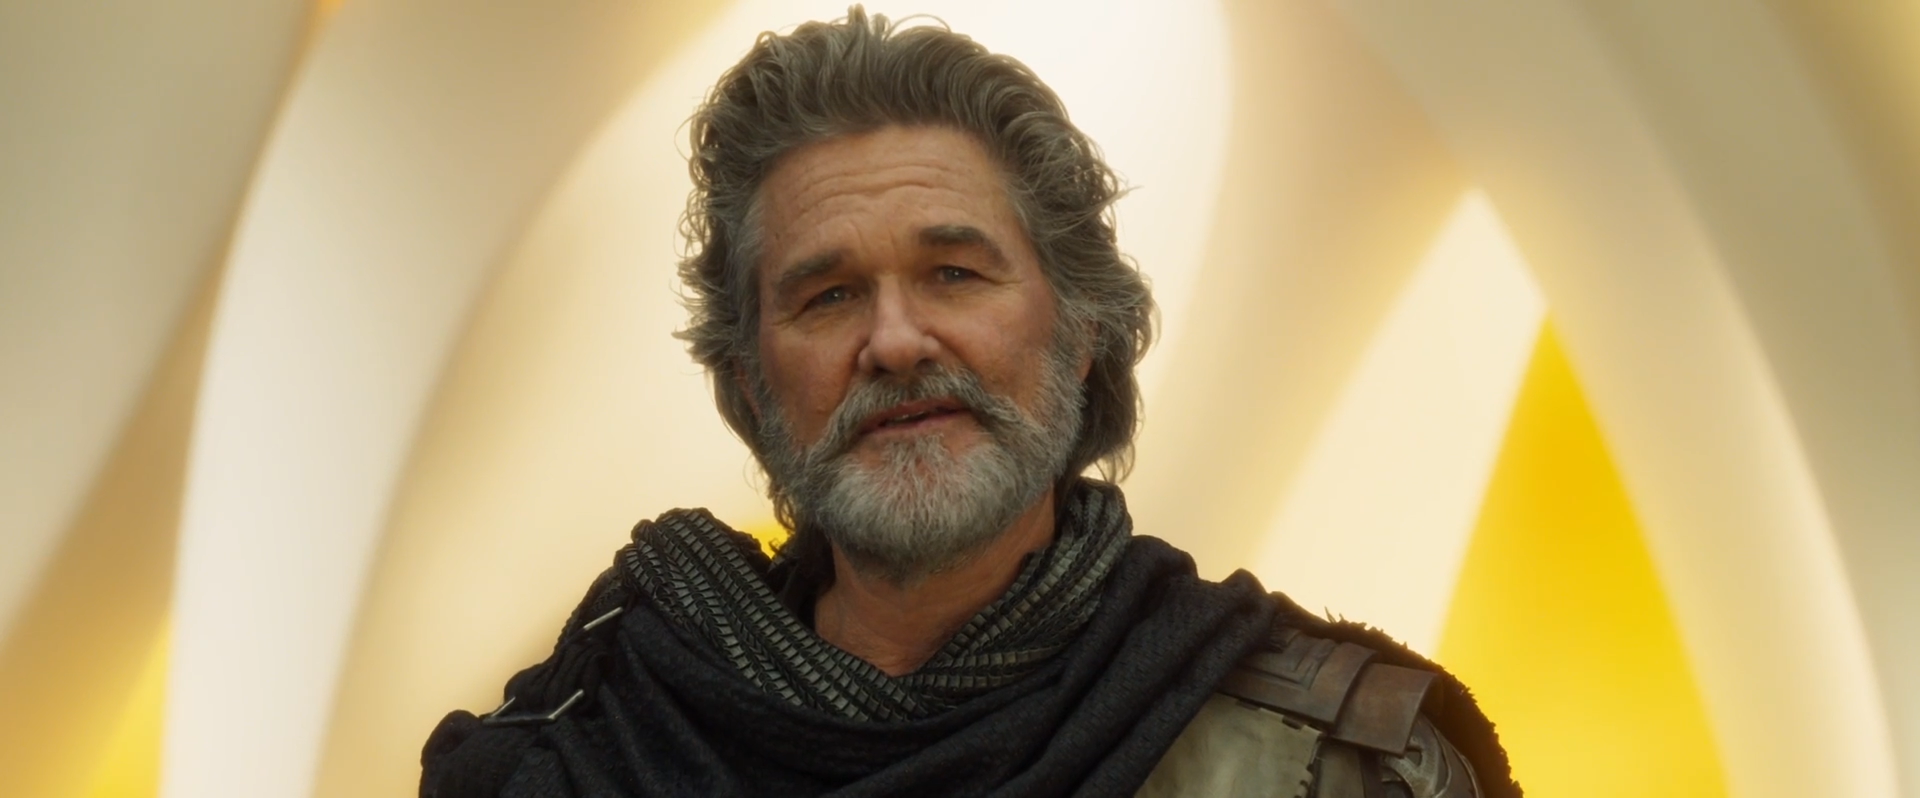 He's a dick. - Screenshot from Guardians of the Galaxy Vol. 2 (2017) trailer